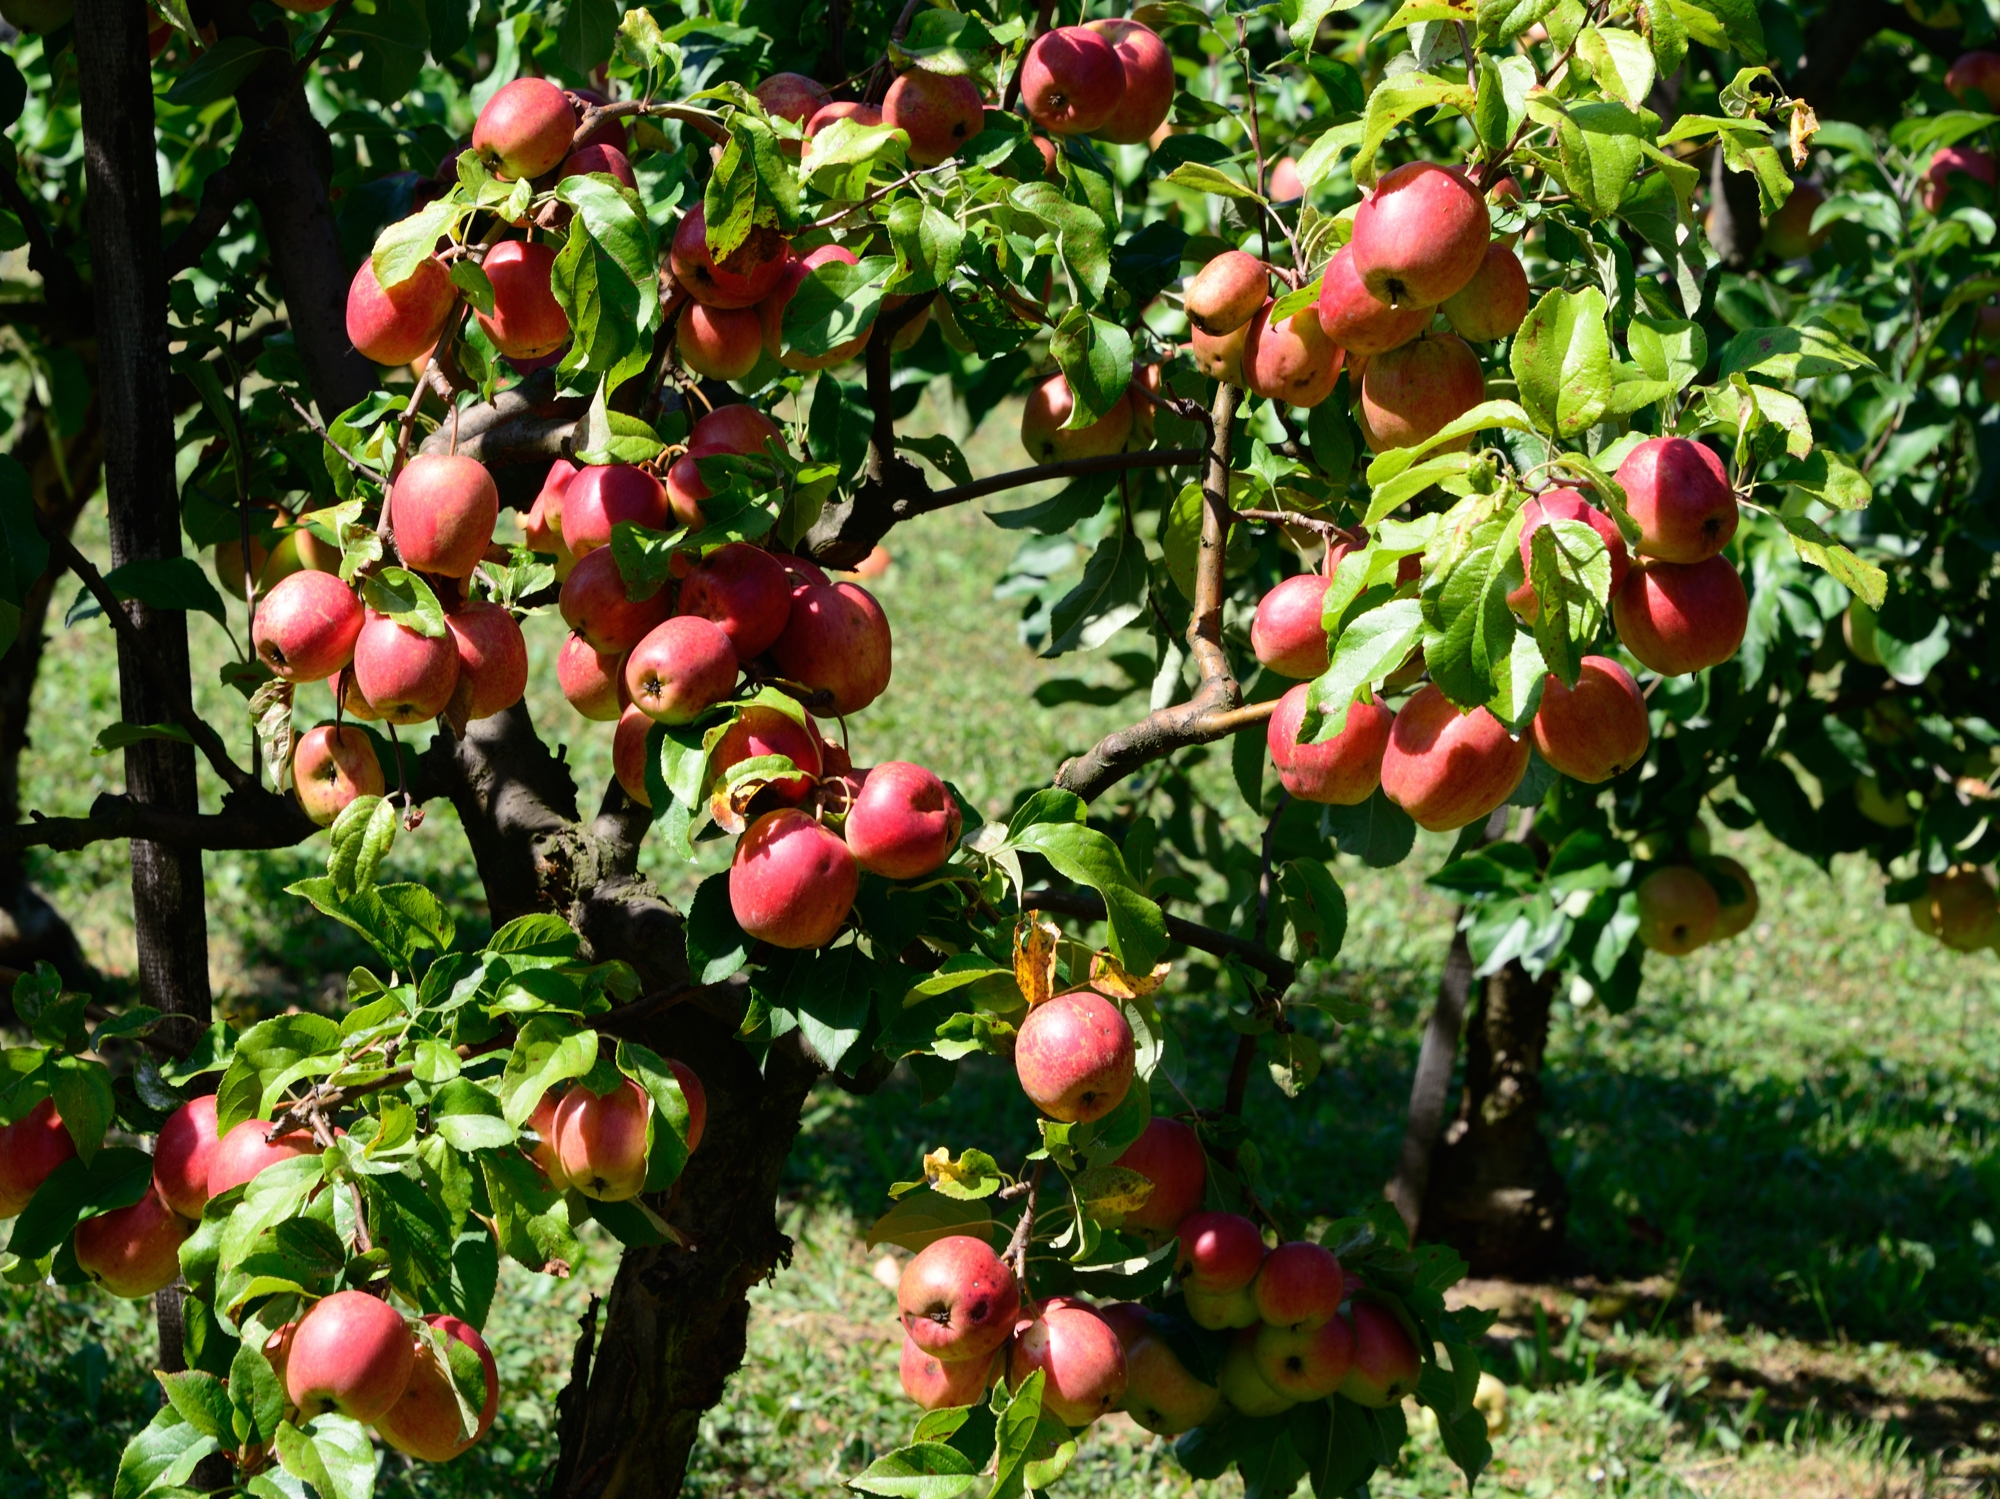 Orchard at the MainÄppelHaus, Lohrberg (Photo copyright © by Anne Noble)